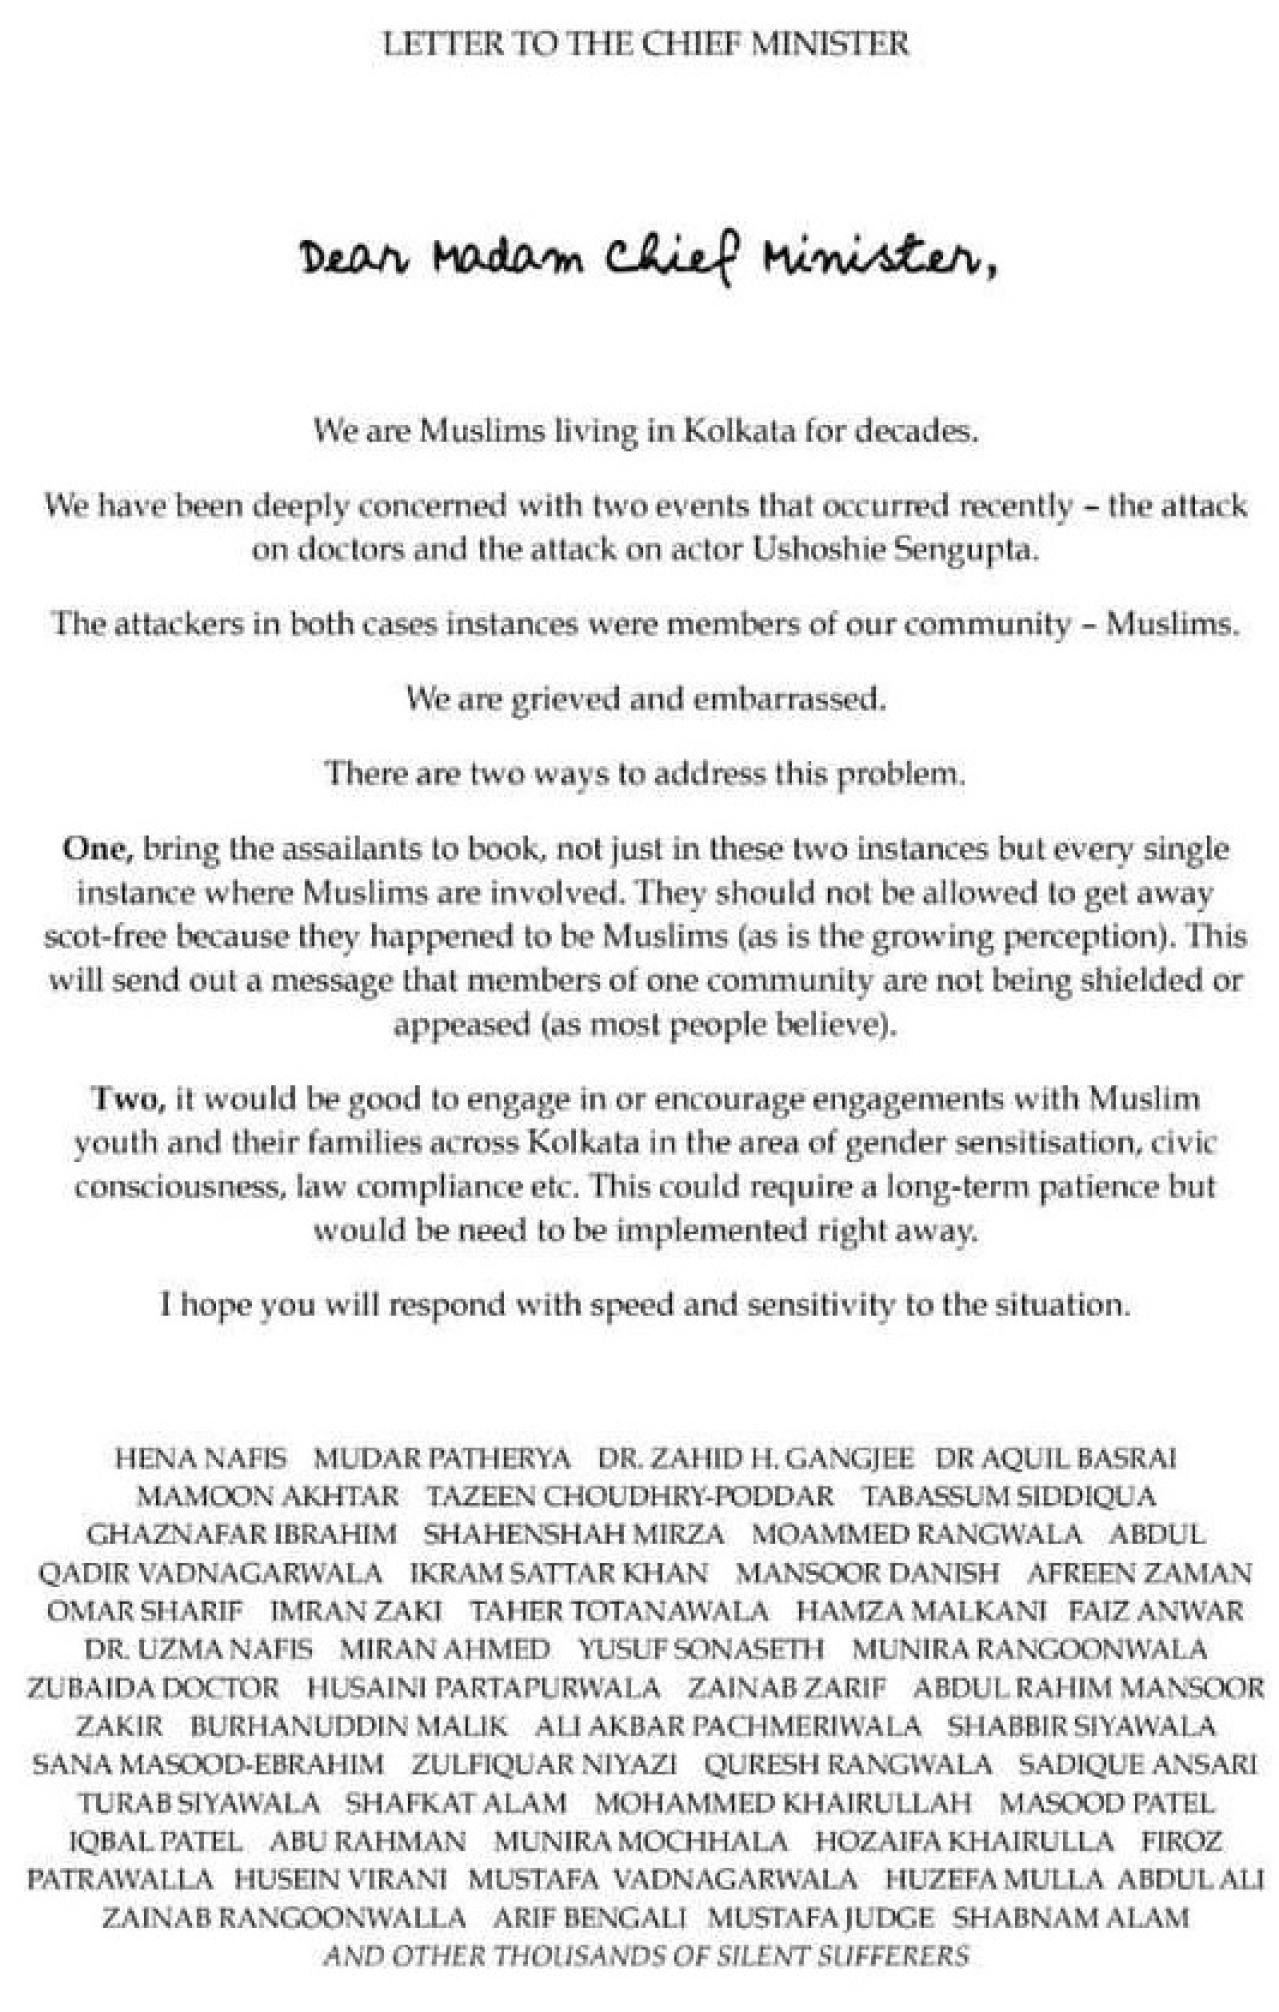 Open letter sent to Mamata by notable Muslims of Kolkata